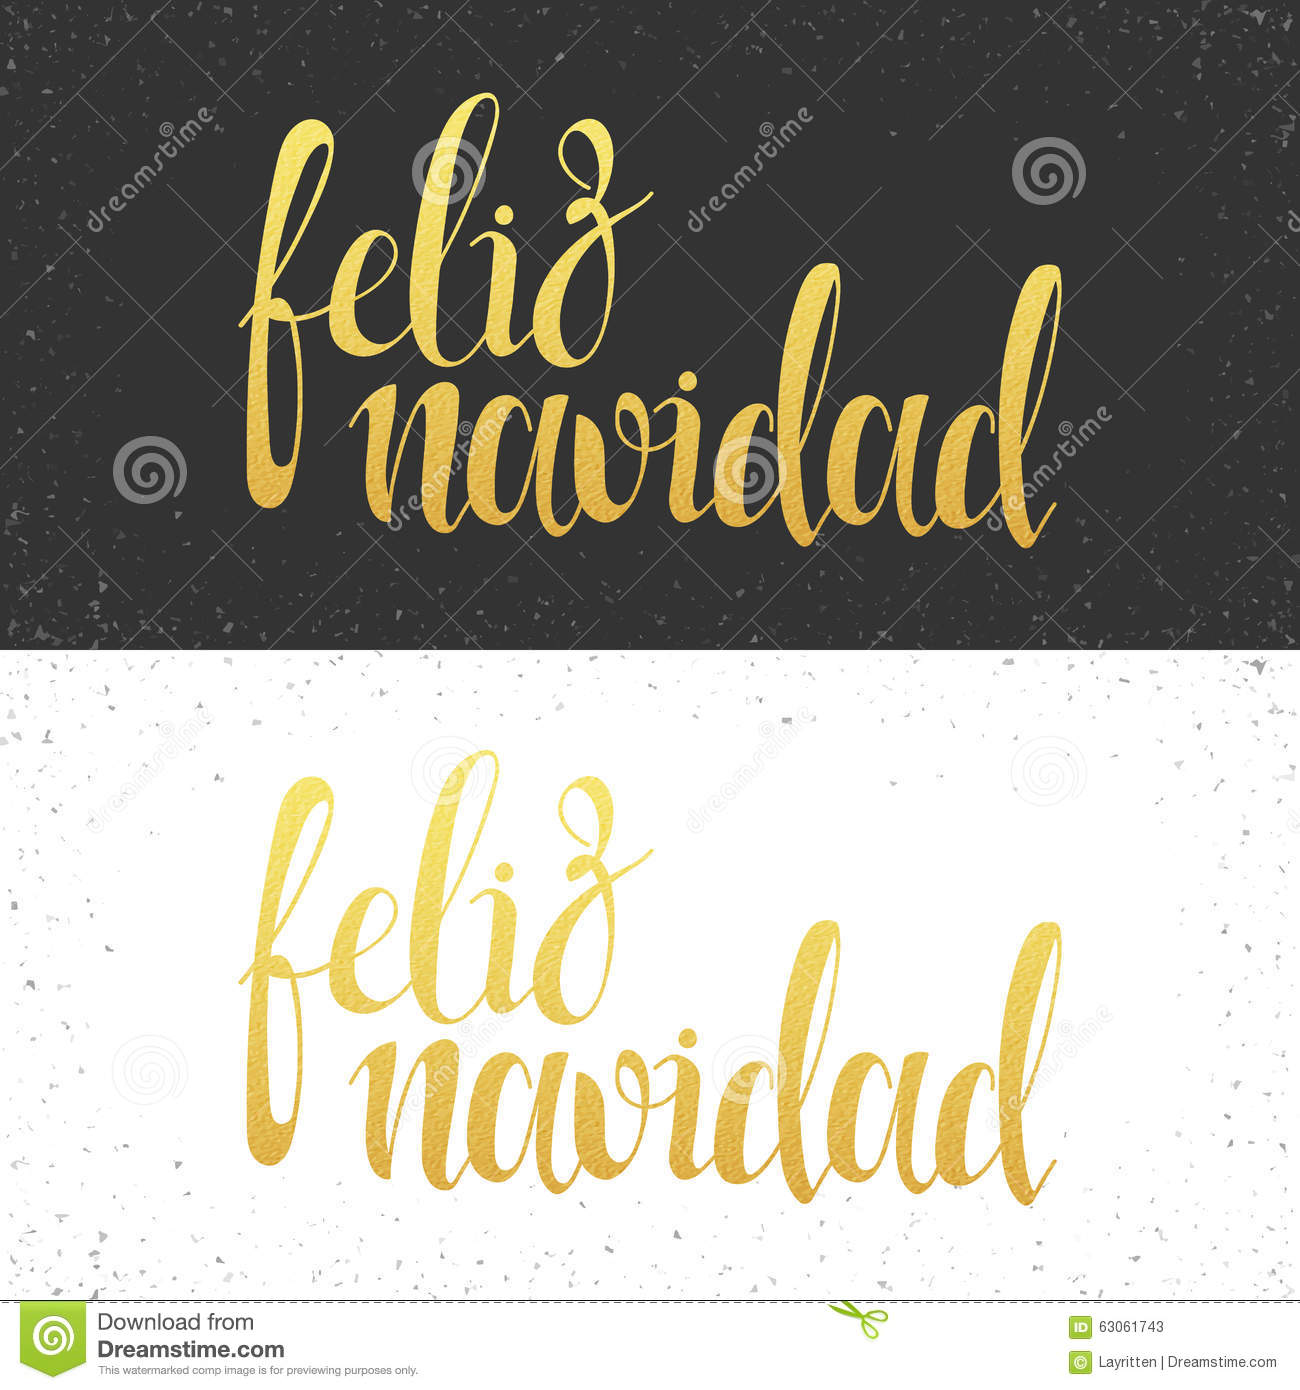 Merry Christmas Card With Greetings In Spanish Language Feliz